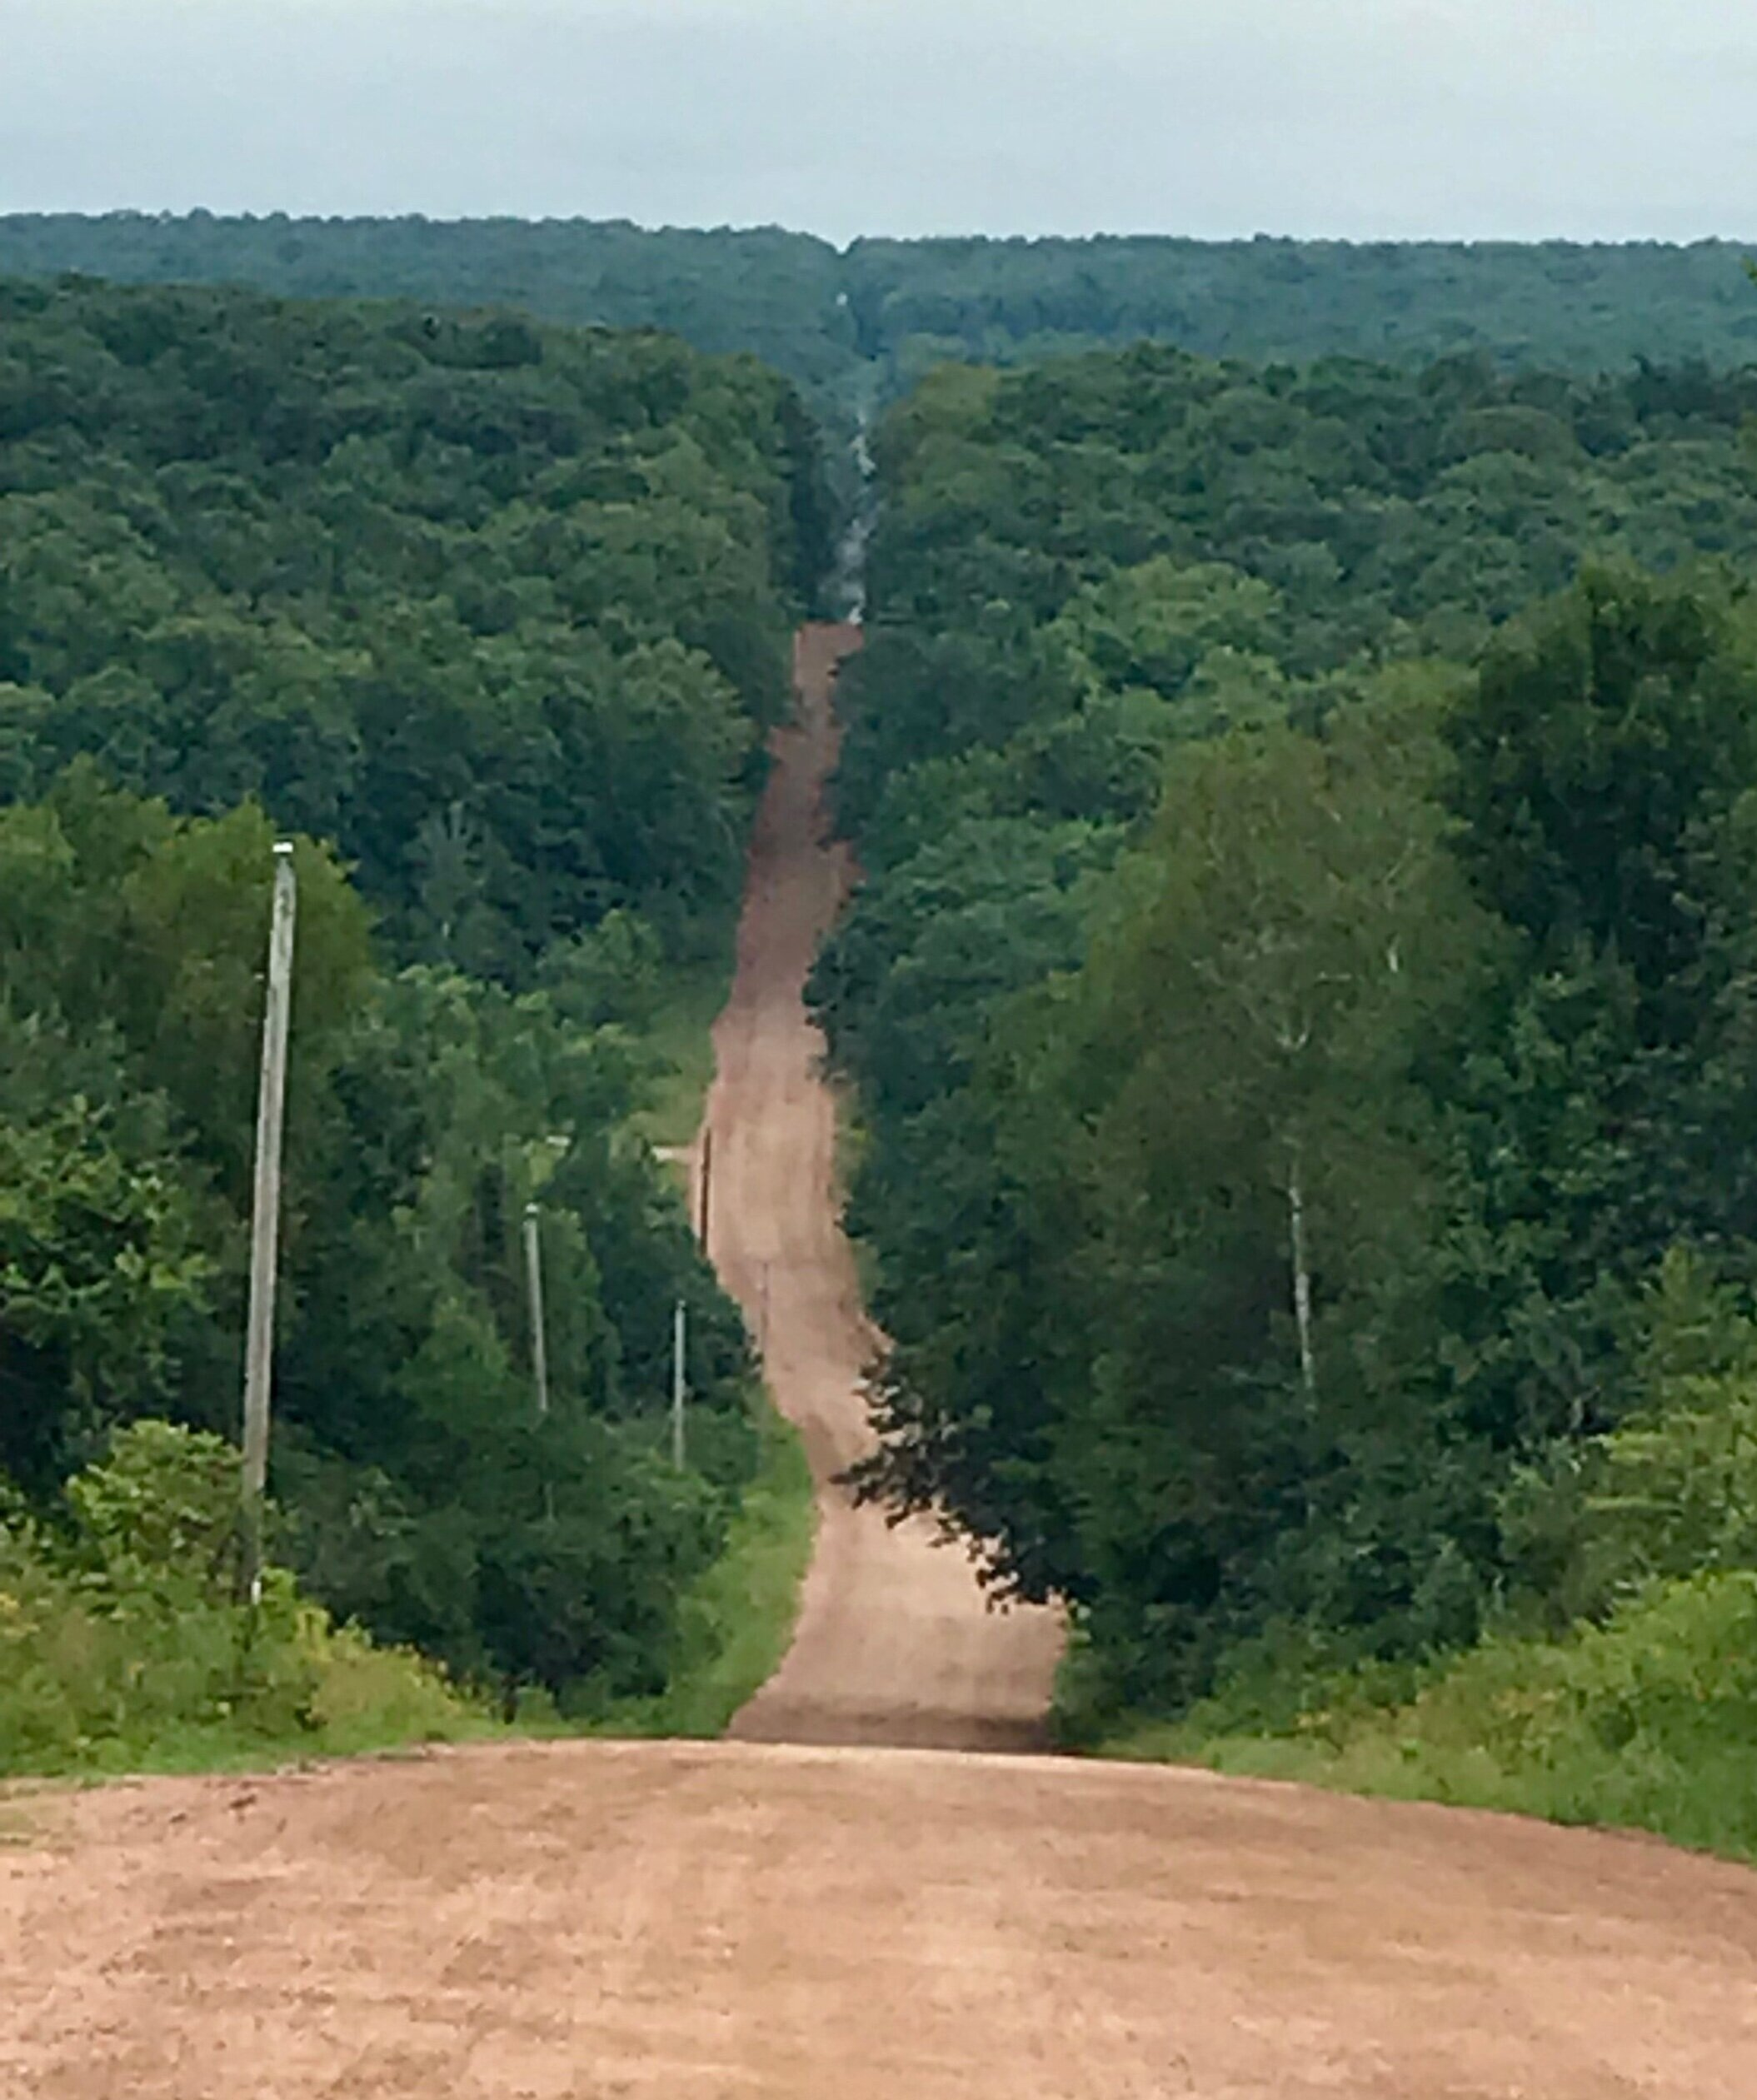 Gravel racers will experience several hills throughout the course, including Brokaw's Billy Goat Hill.